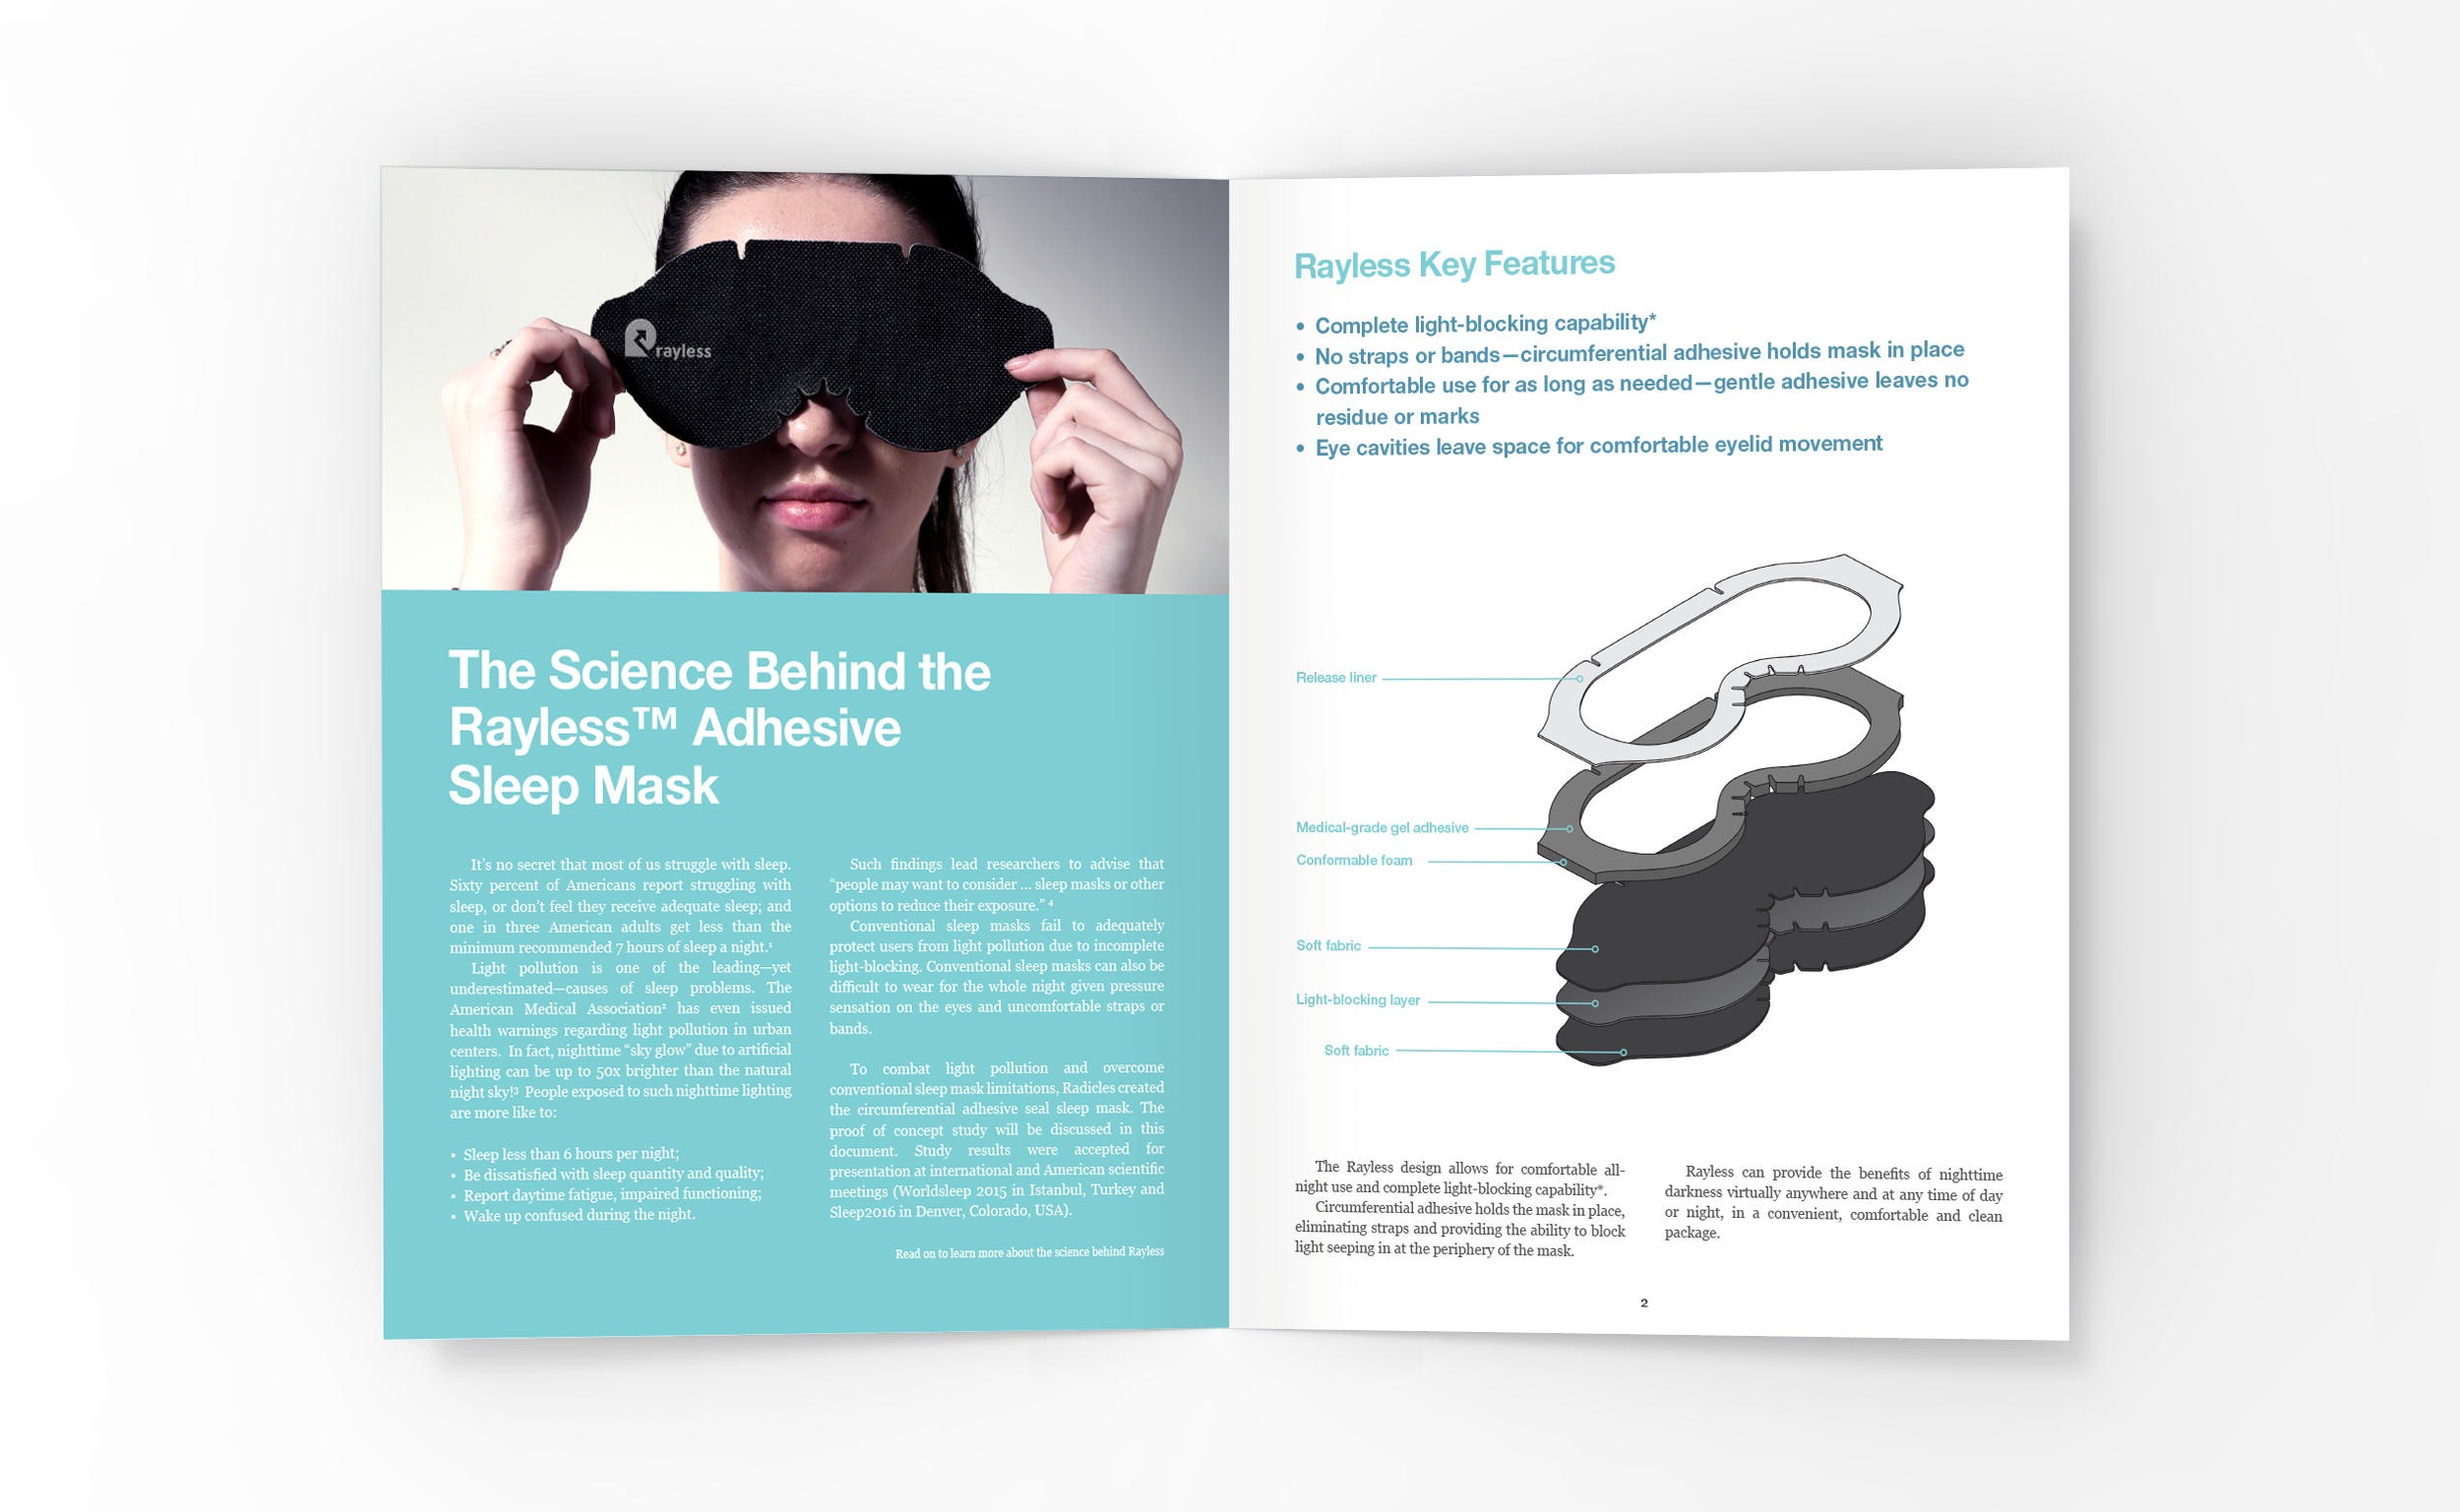 Rayless Adhesive Sleep Mask